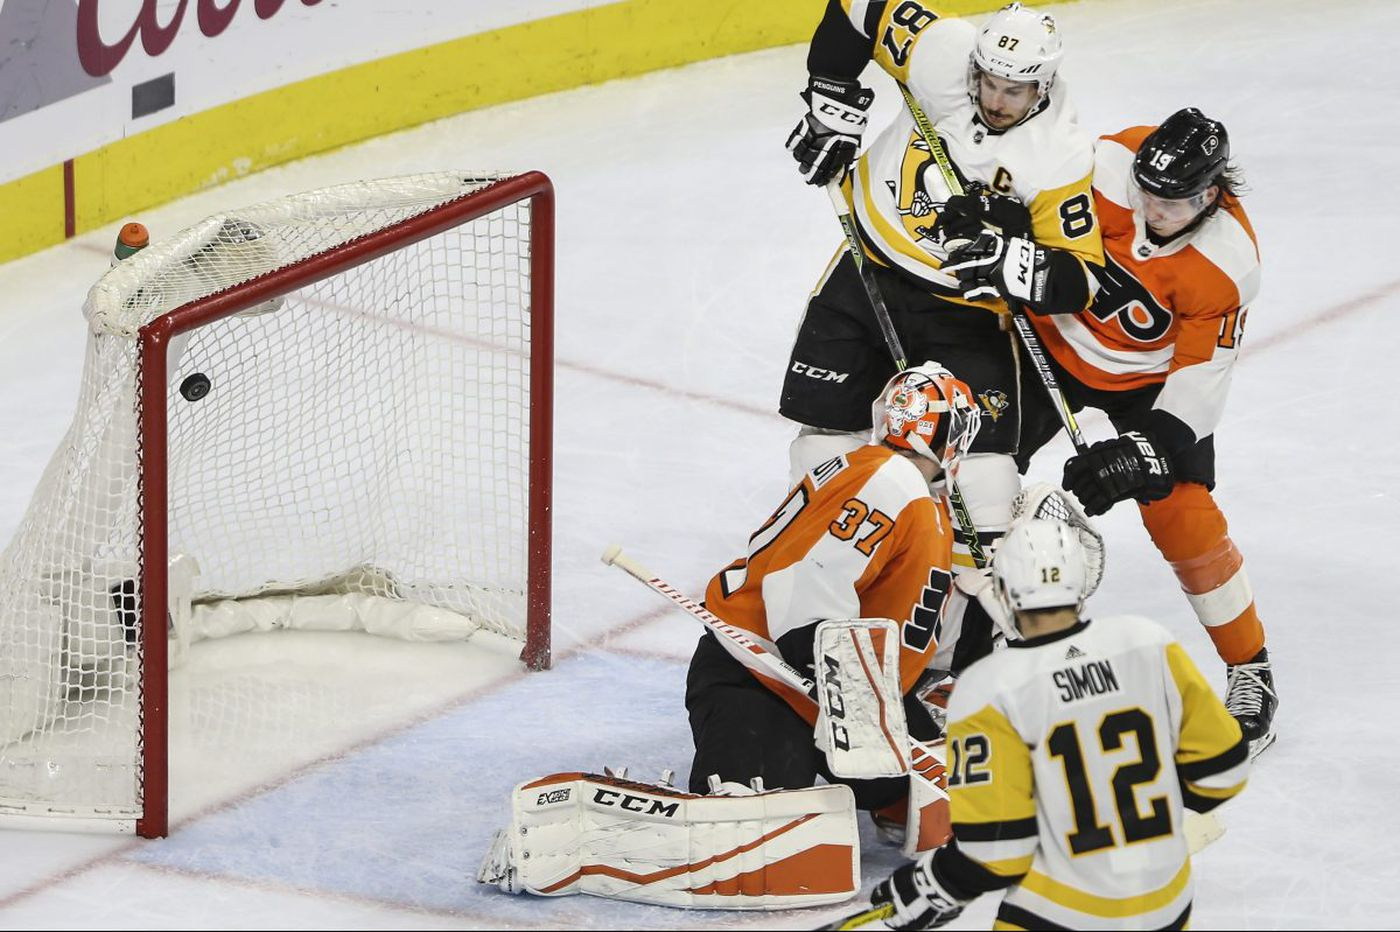 Flyers lose to Penguins, on brink of elimination from NHL playoffs